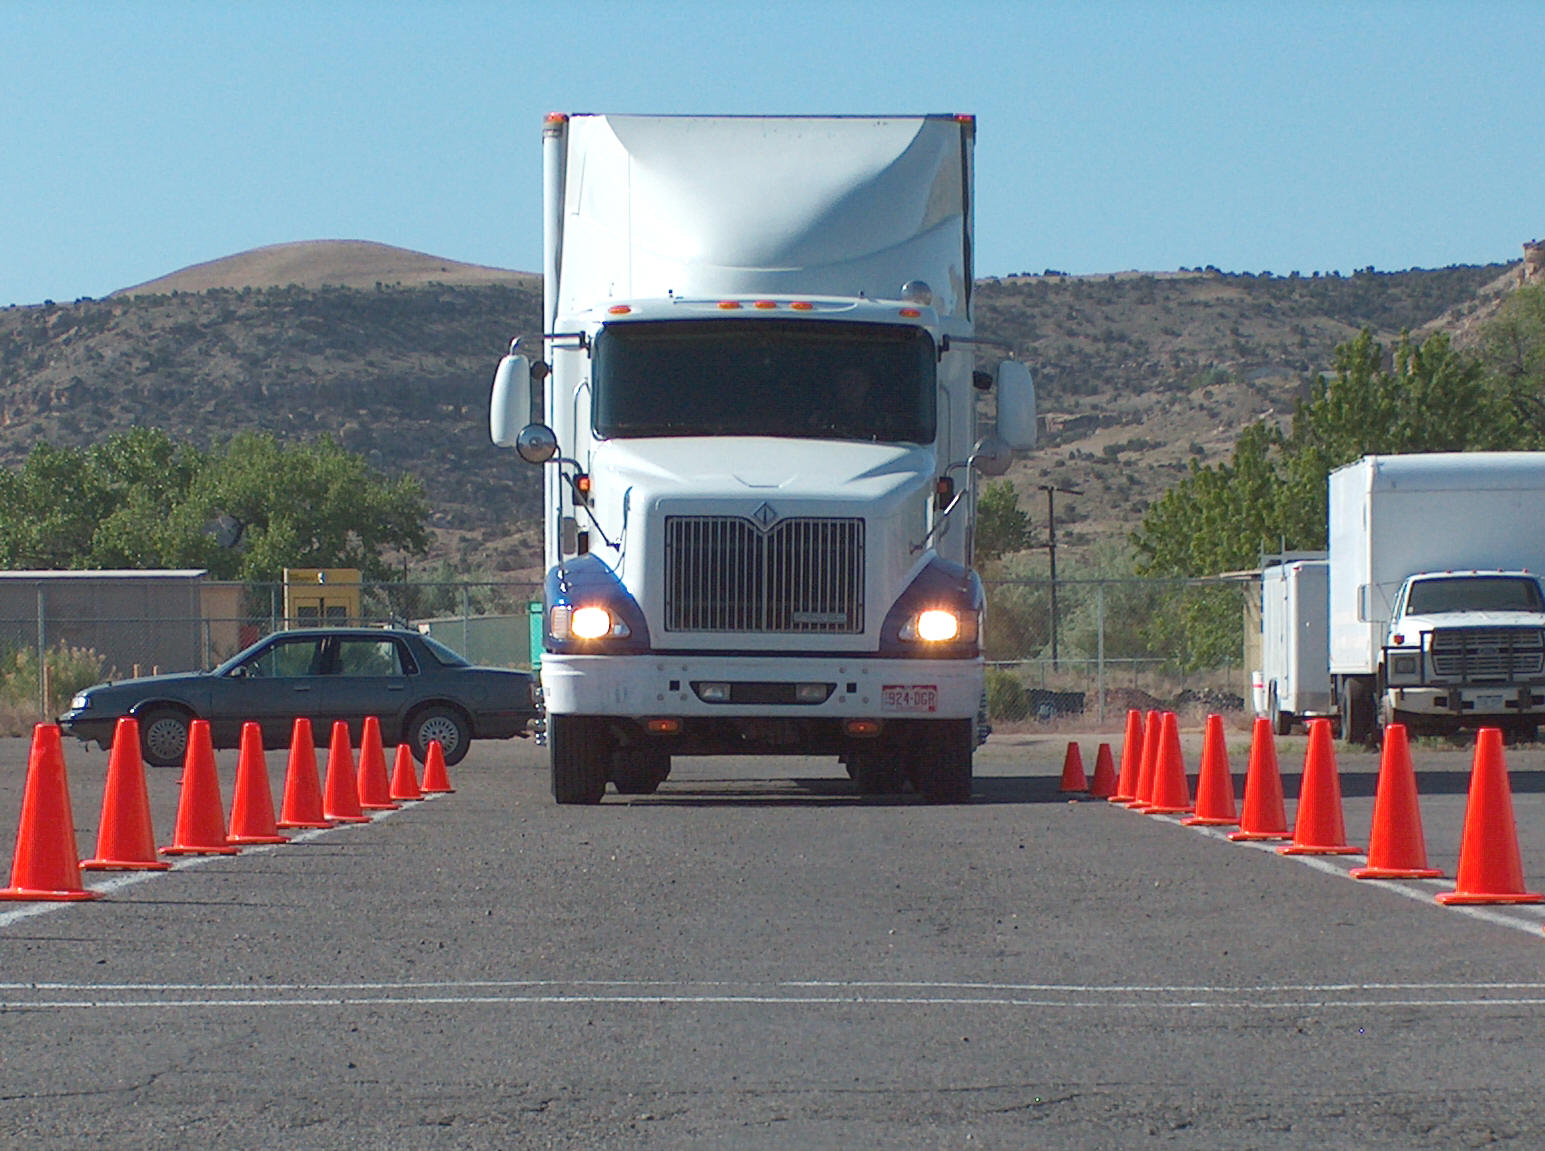 Progressive Insurance releases tool aimed to help bring more drivers into trucking